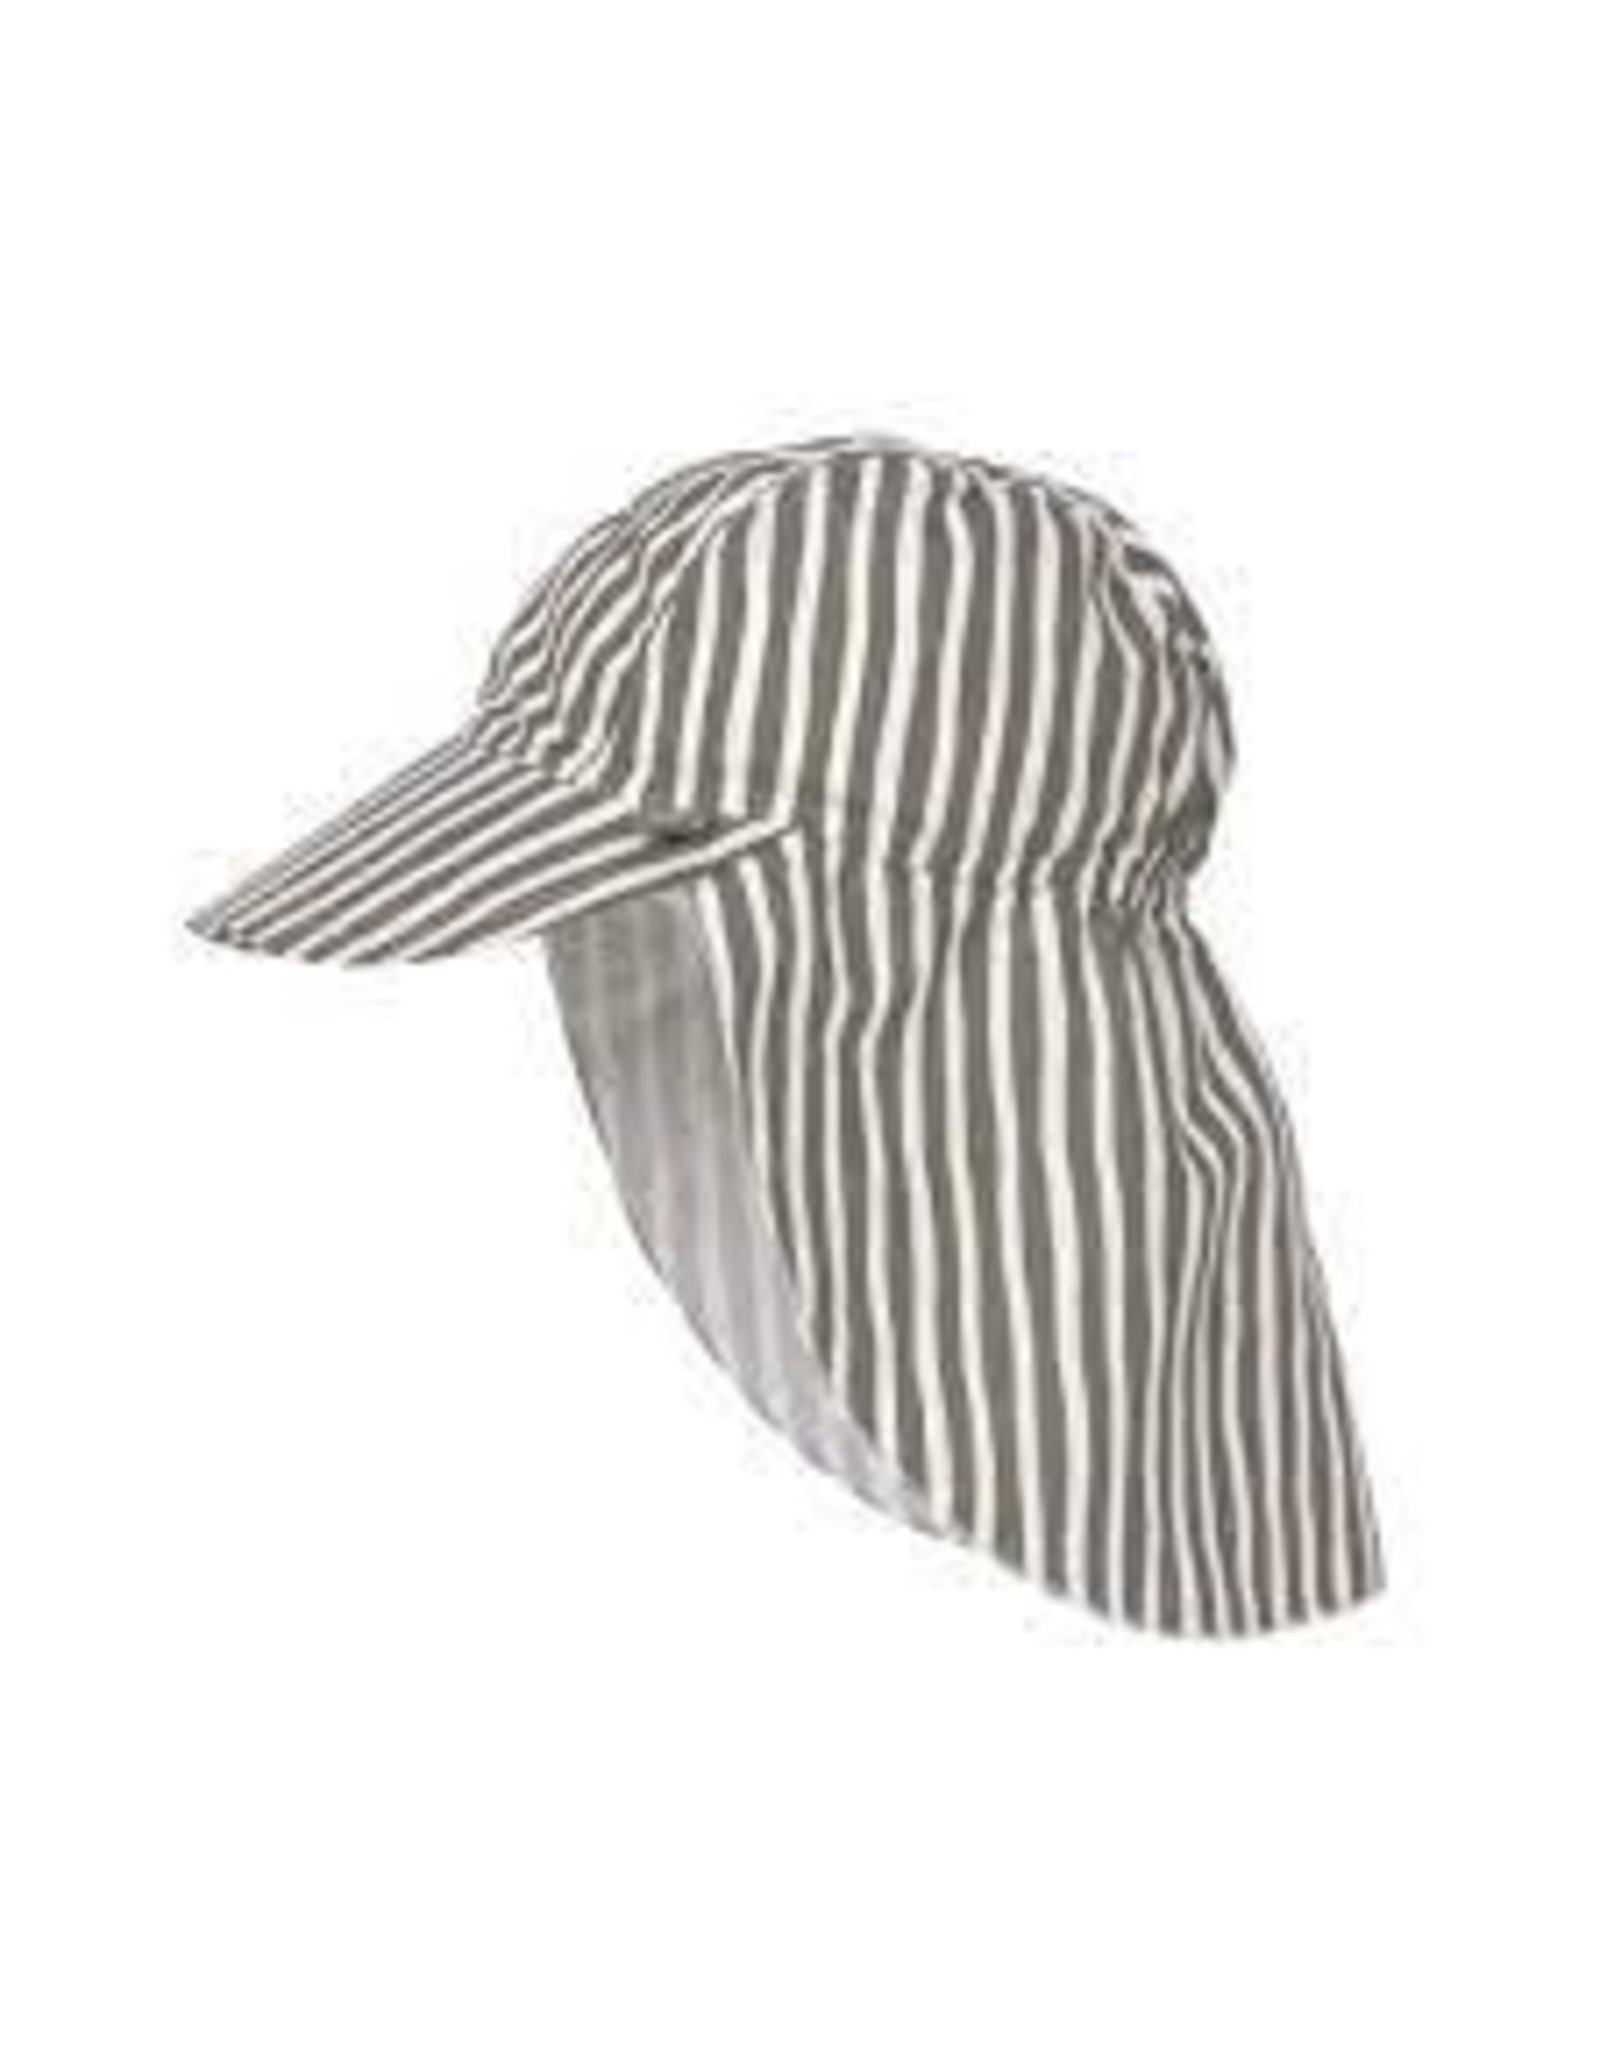 Lassig Lassig Sun Protection Flap Hat Stripes Olive